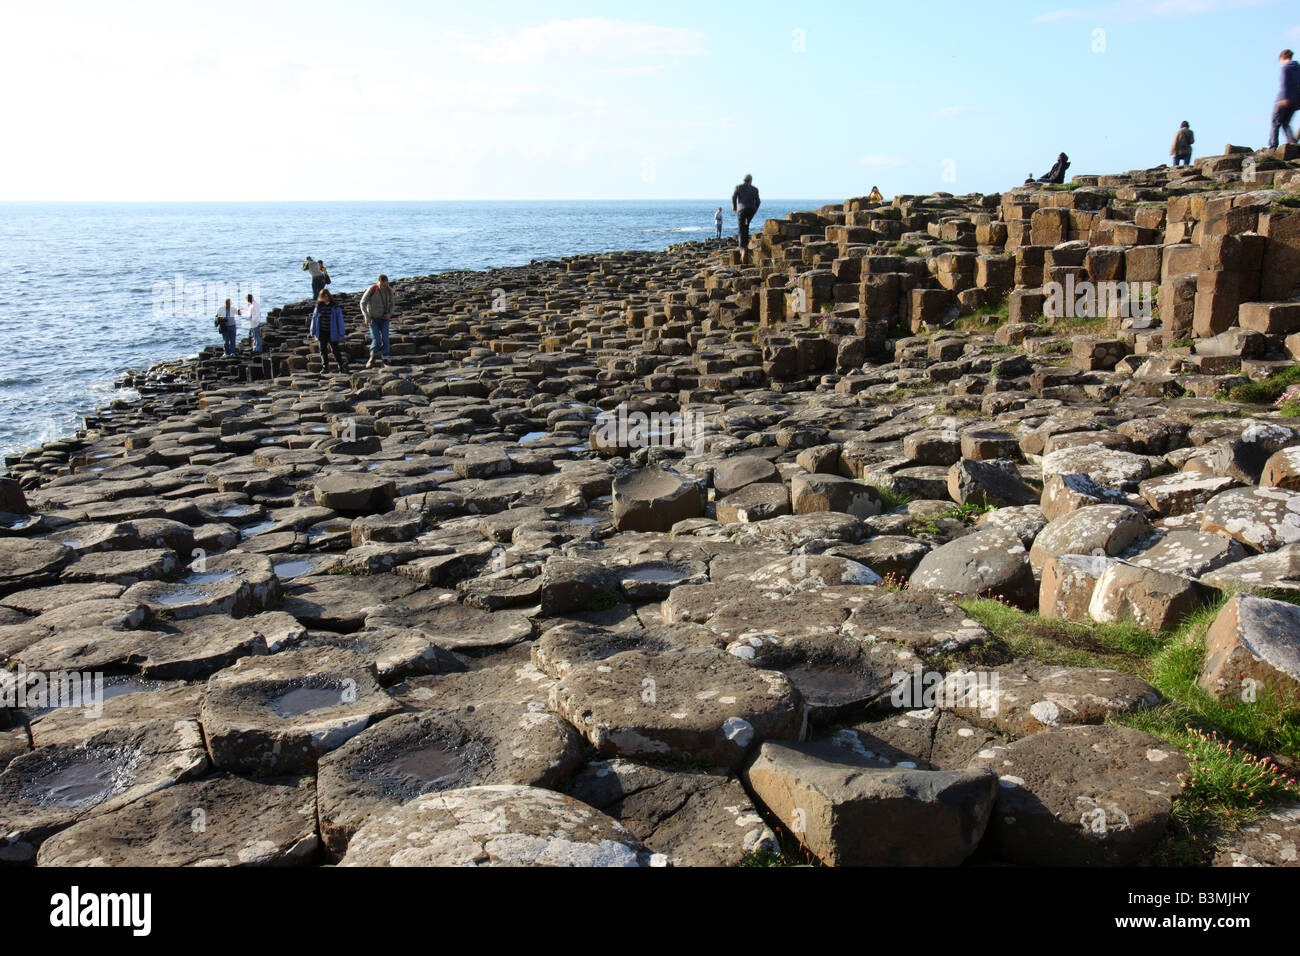 Visitors on the Giants Causeway - Stock Image